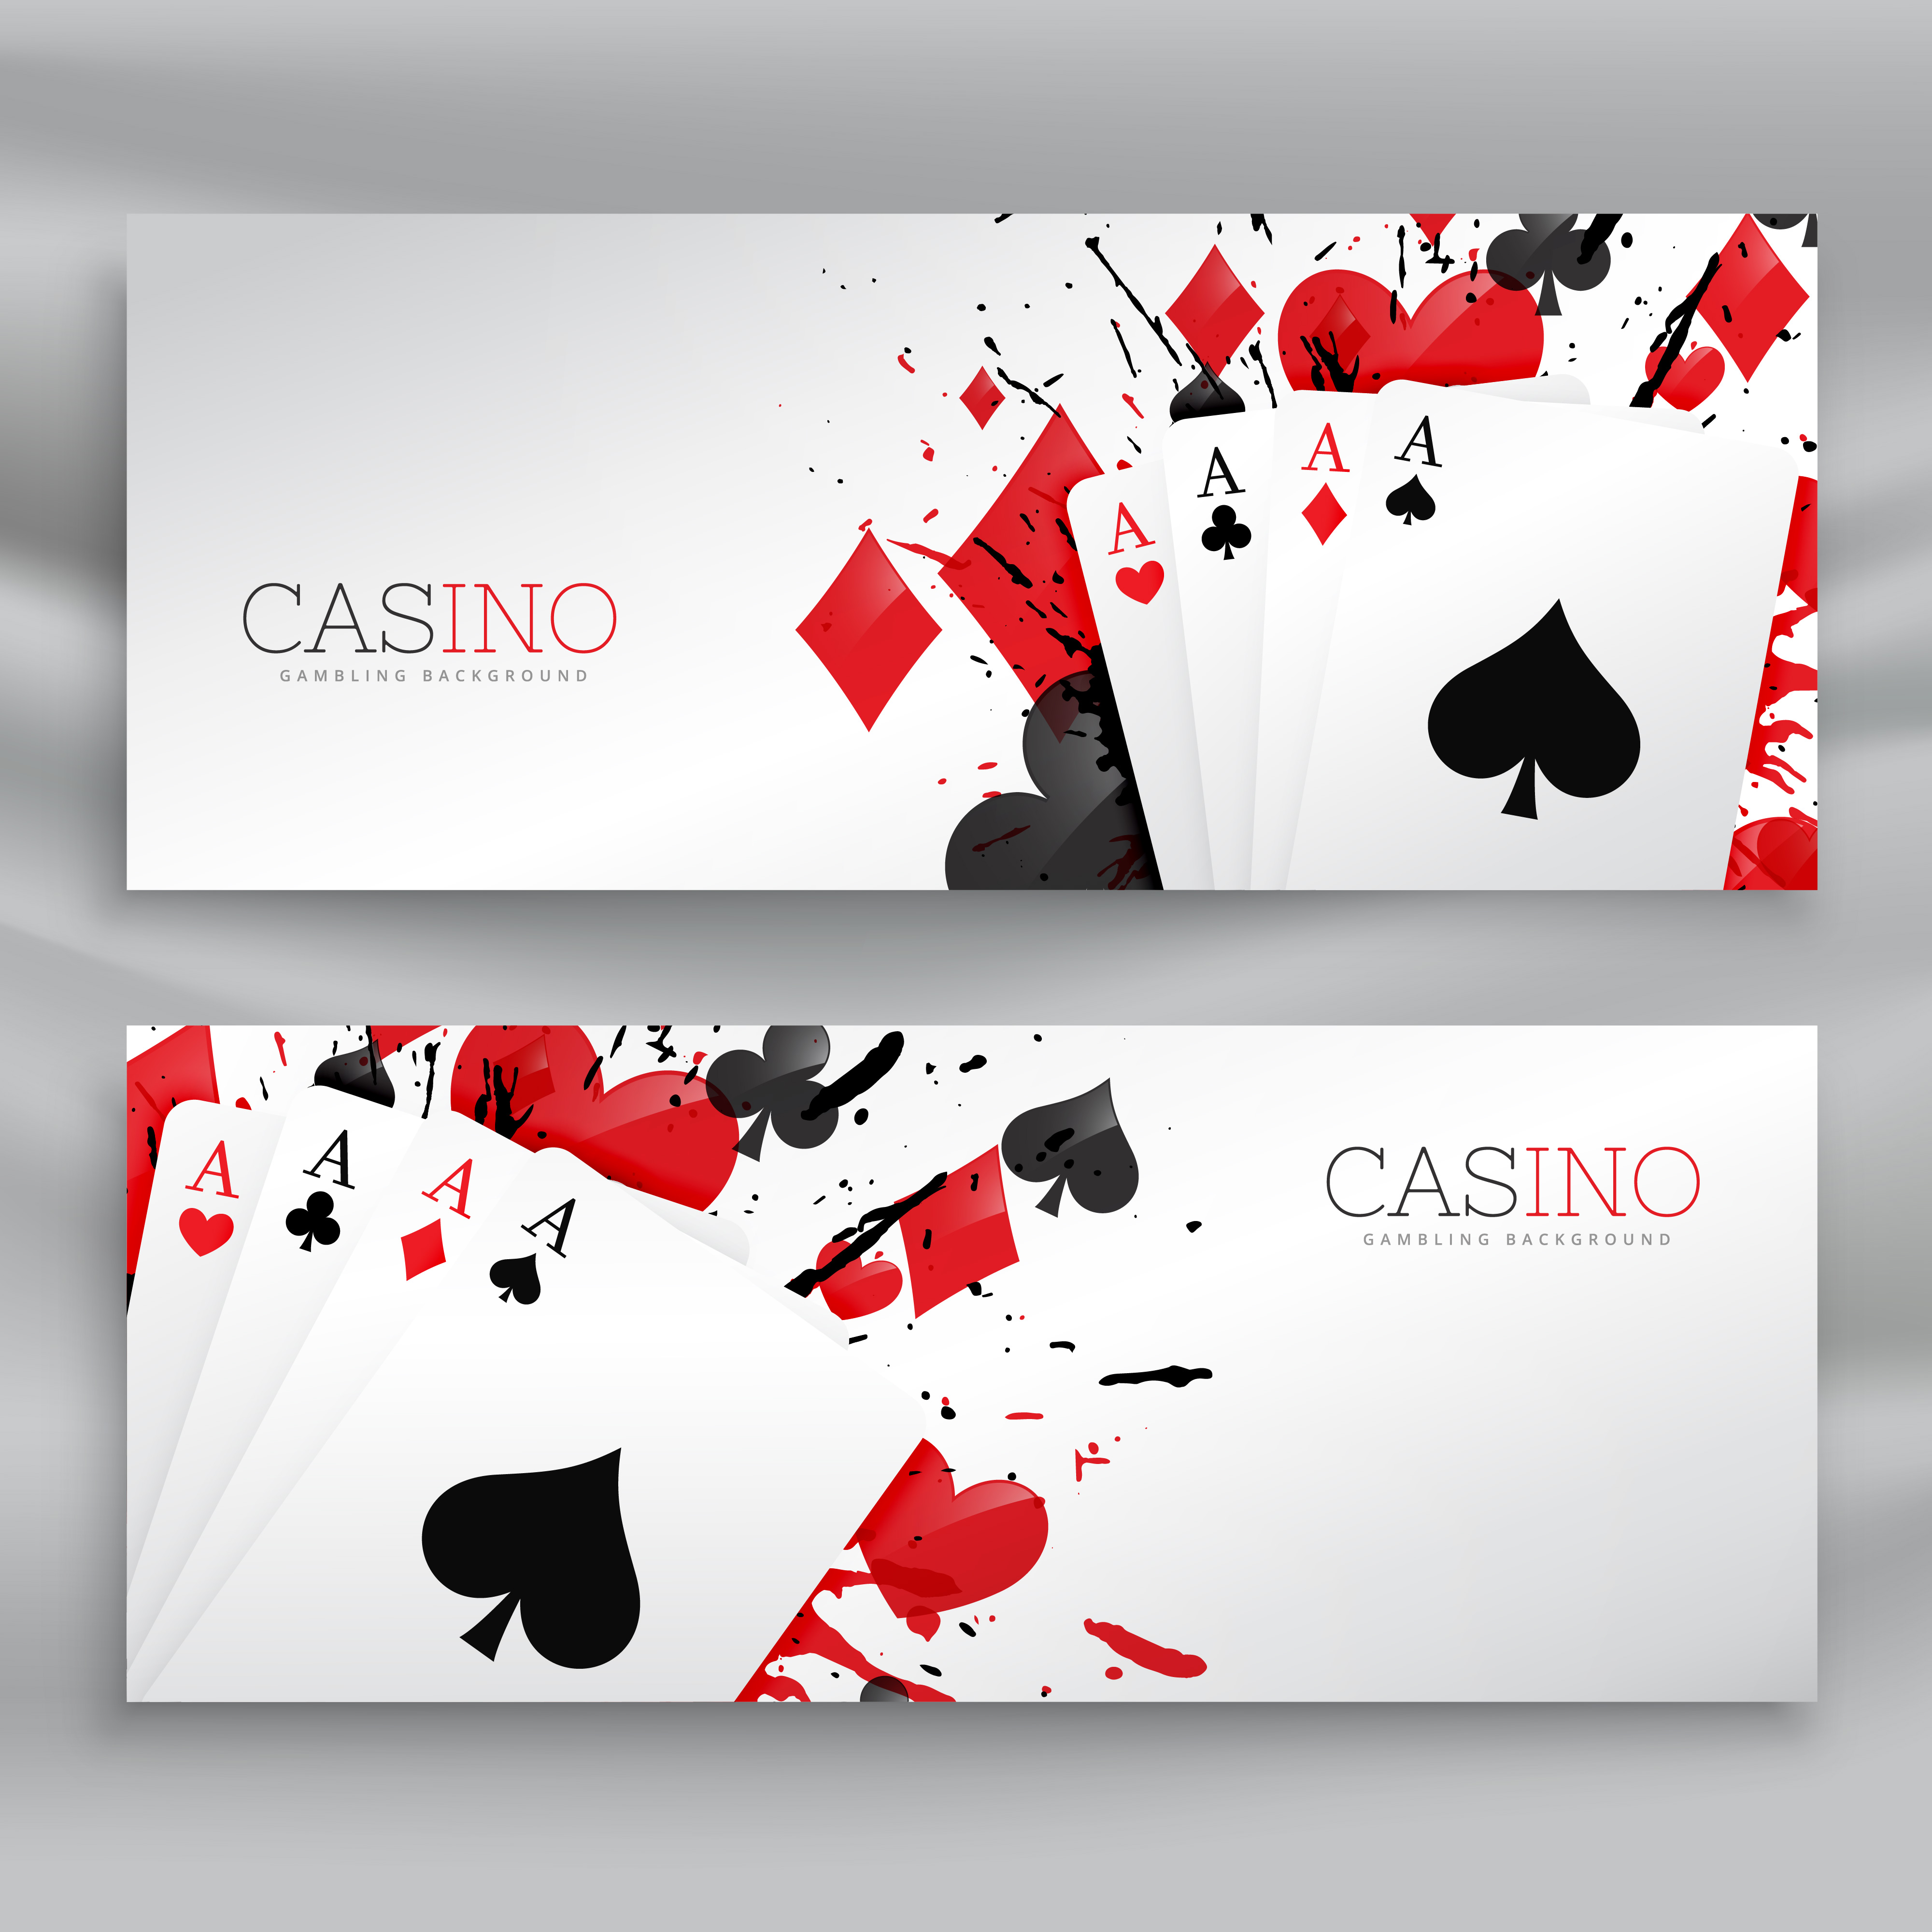 casino playing cards banners set background - Download